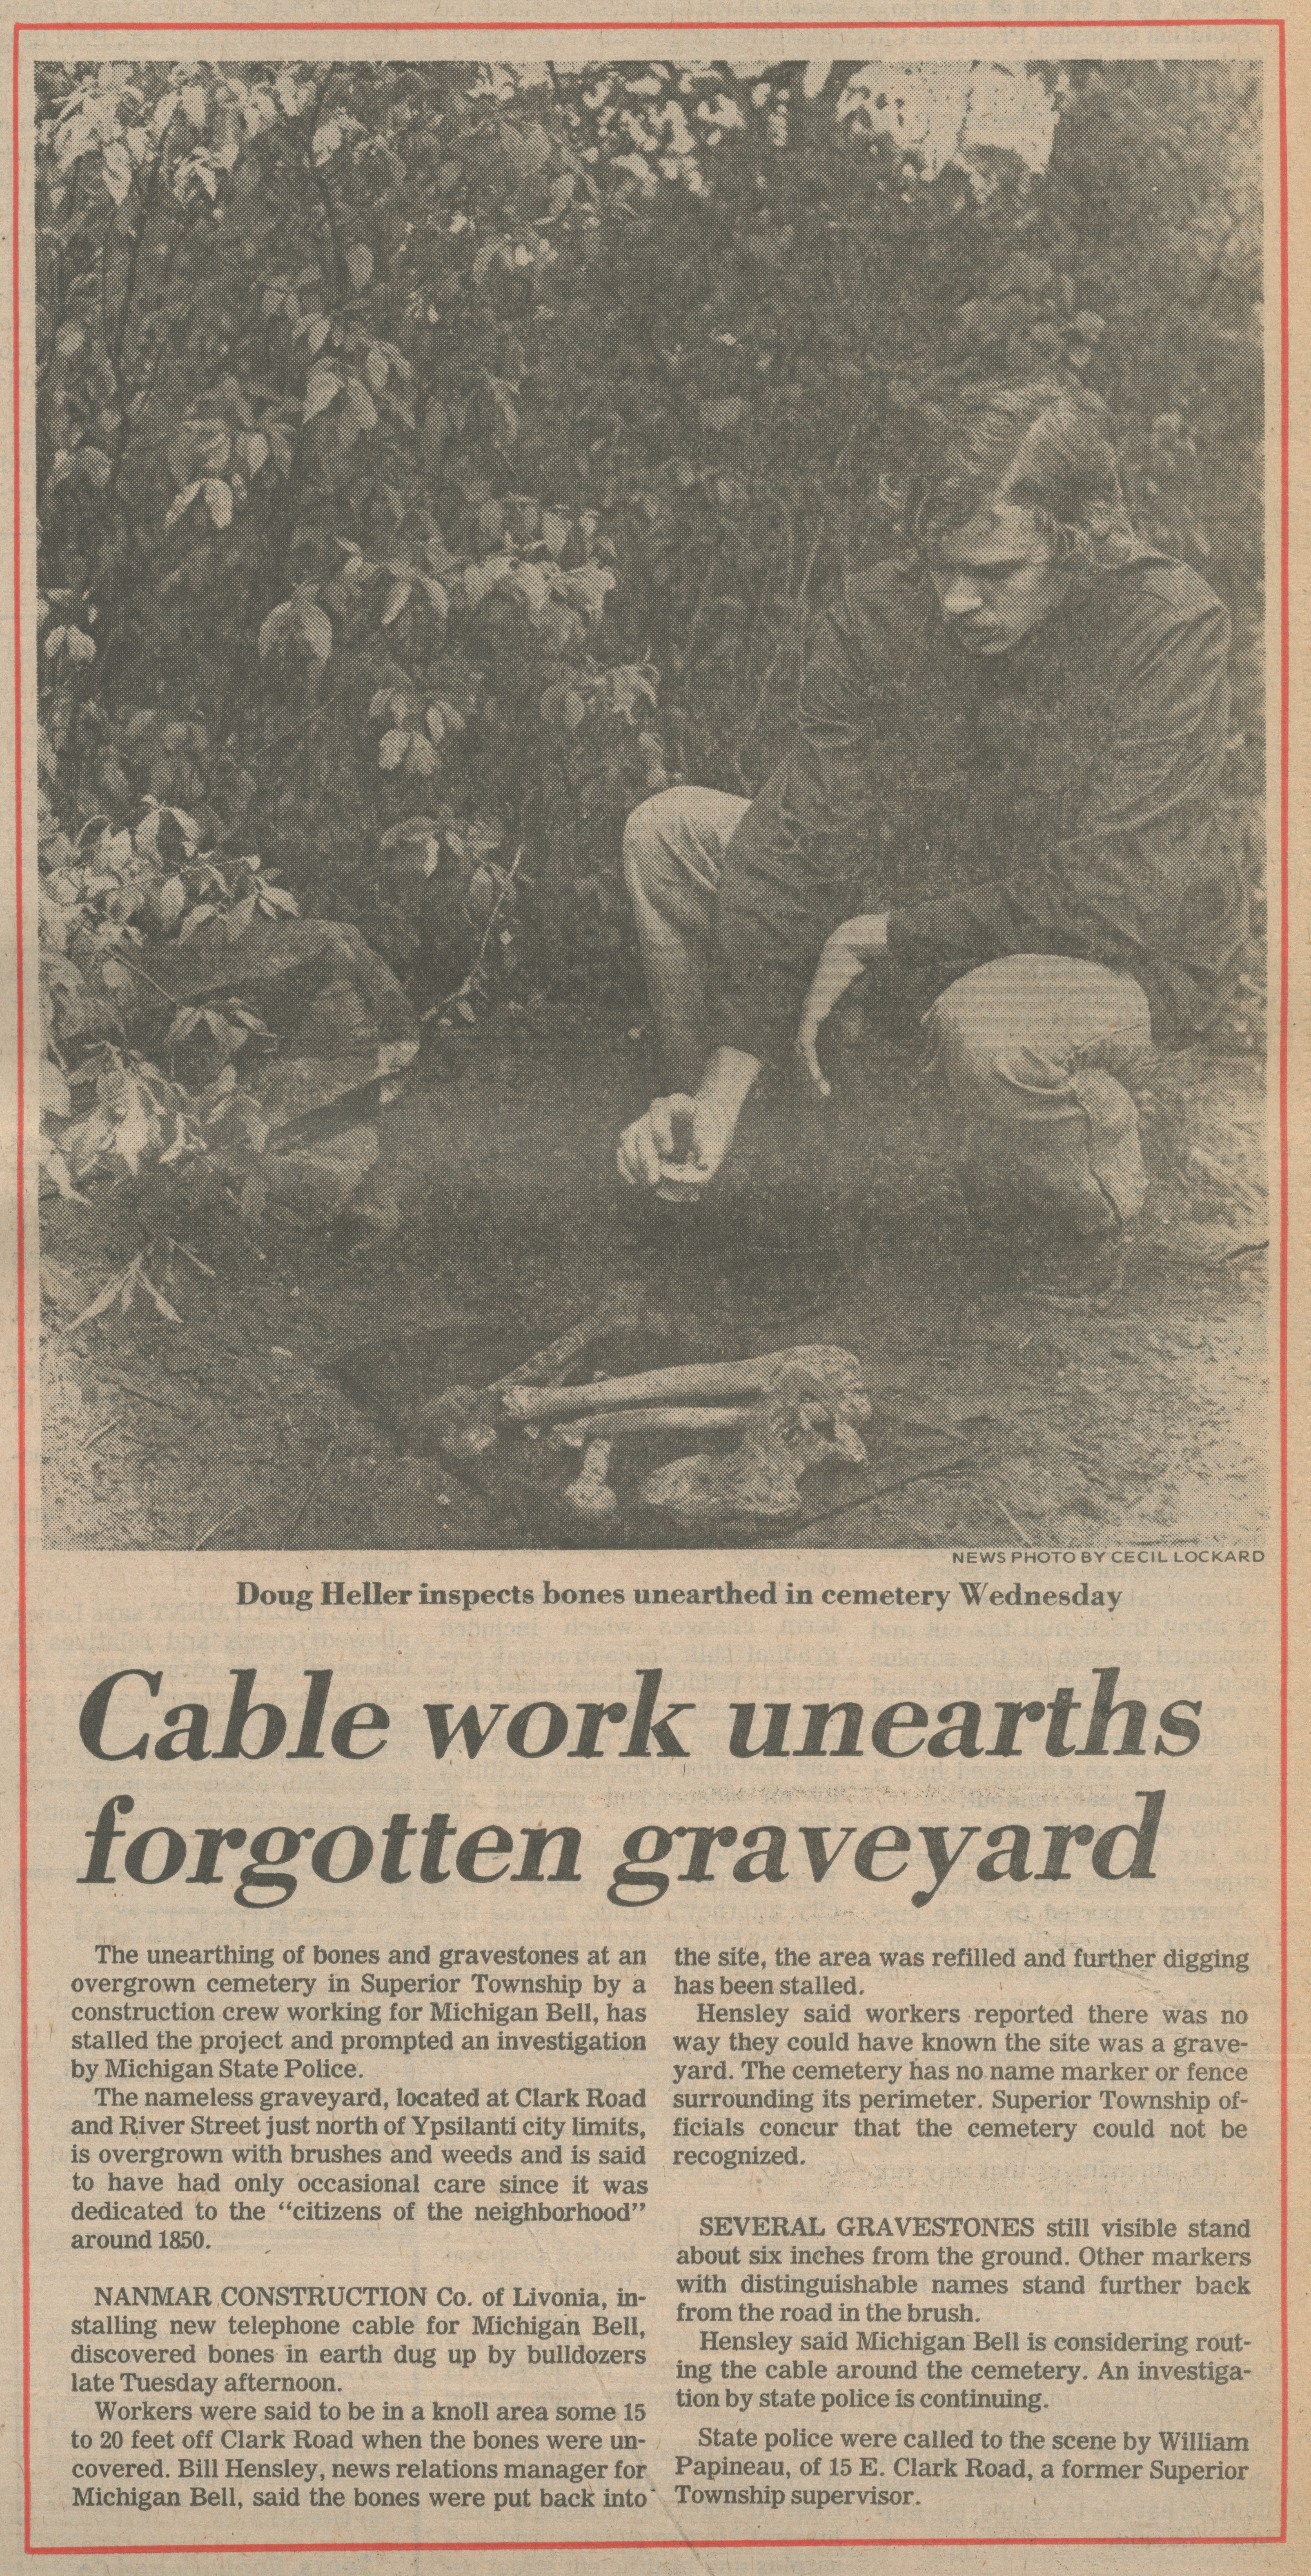 Cable work unearths forgotten graveyard image